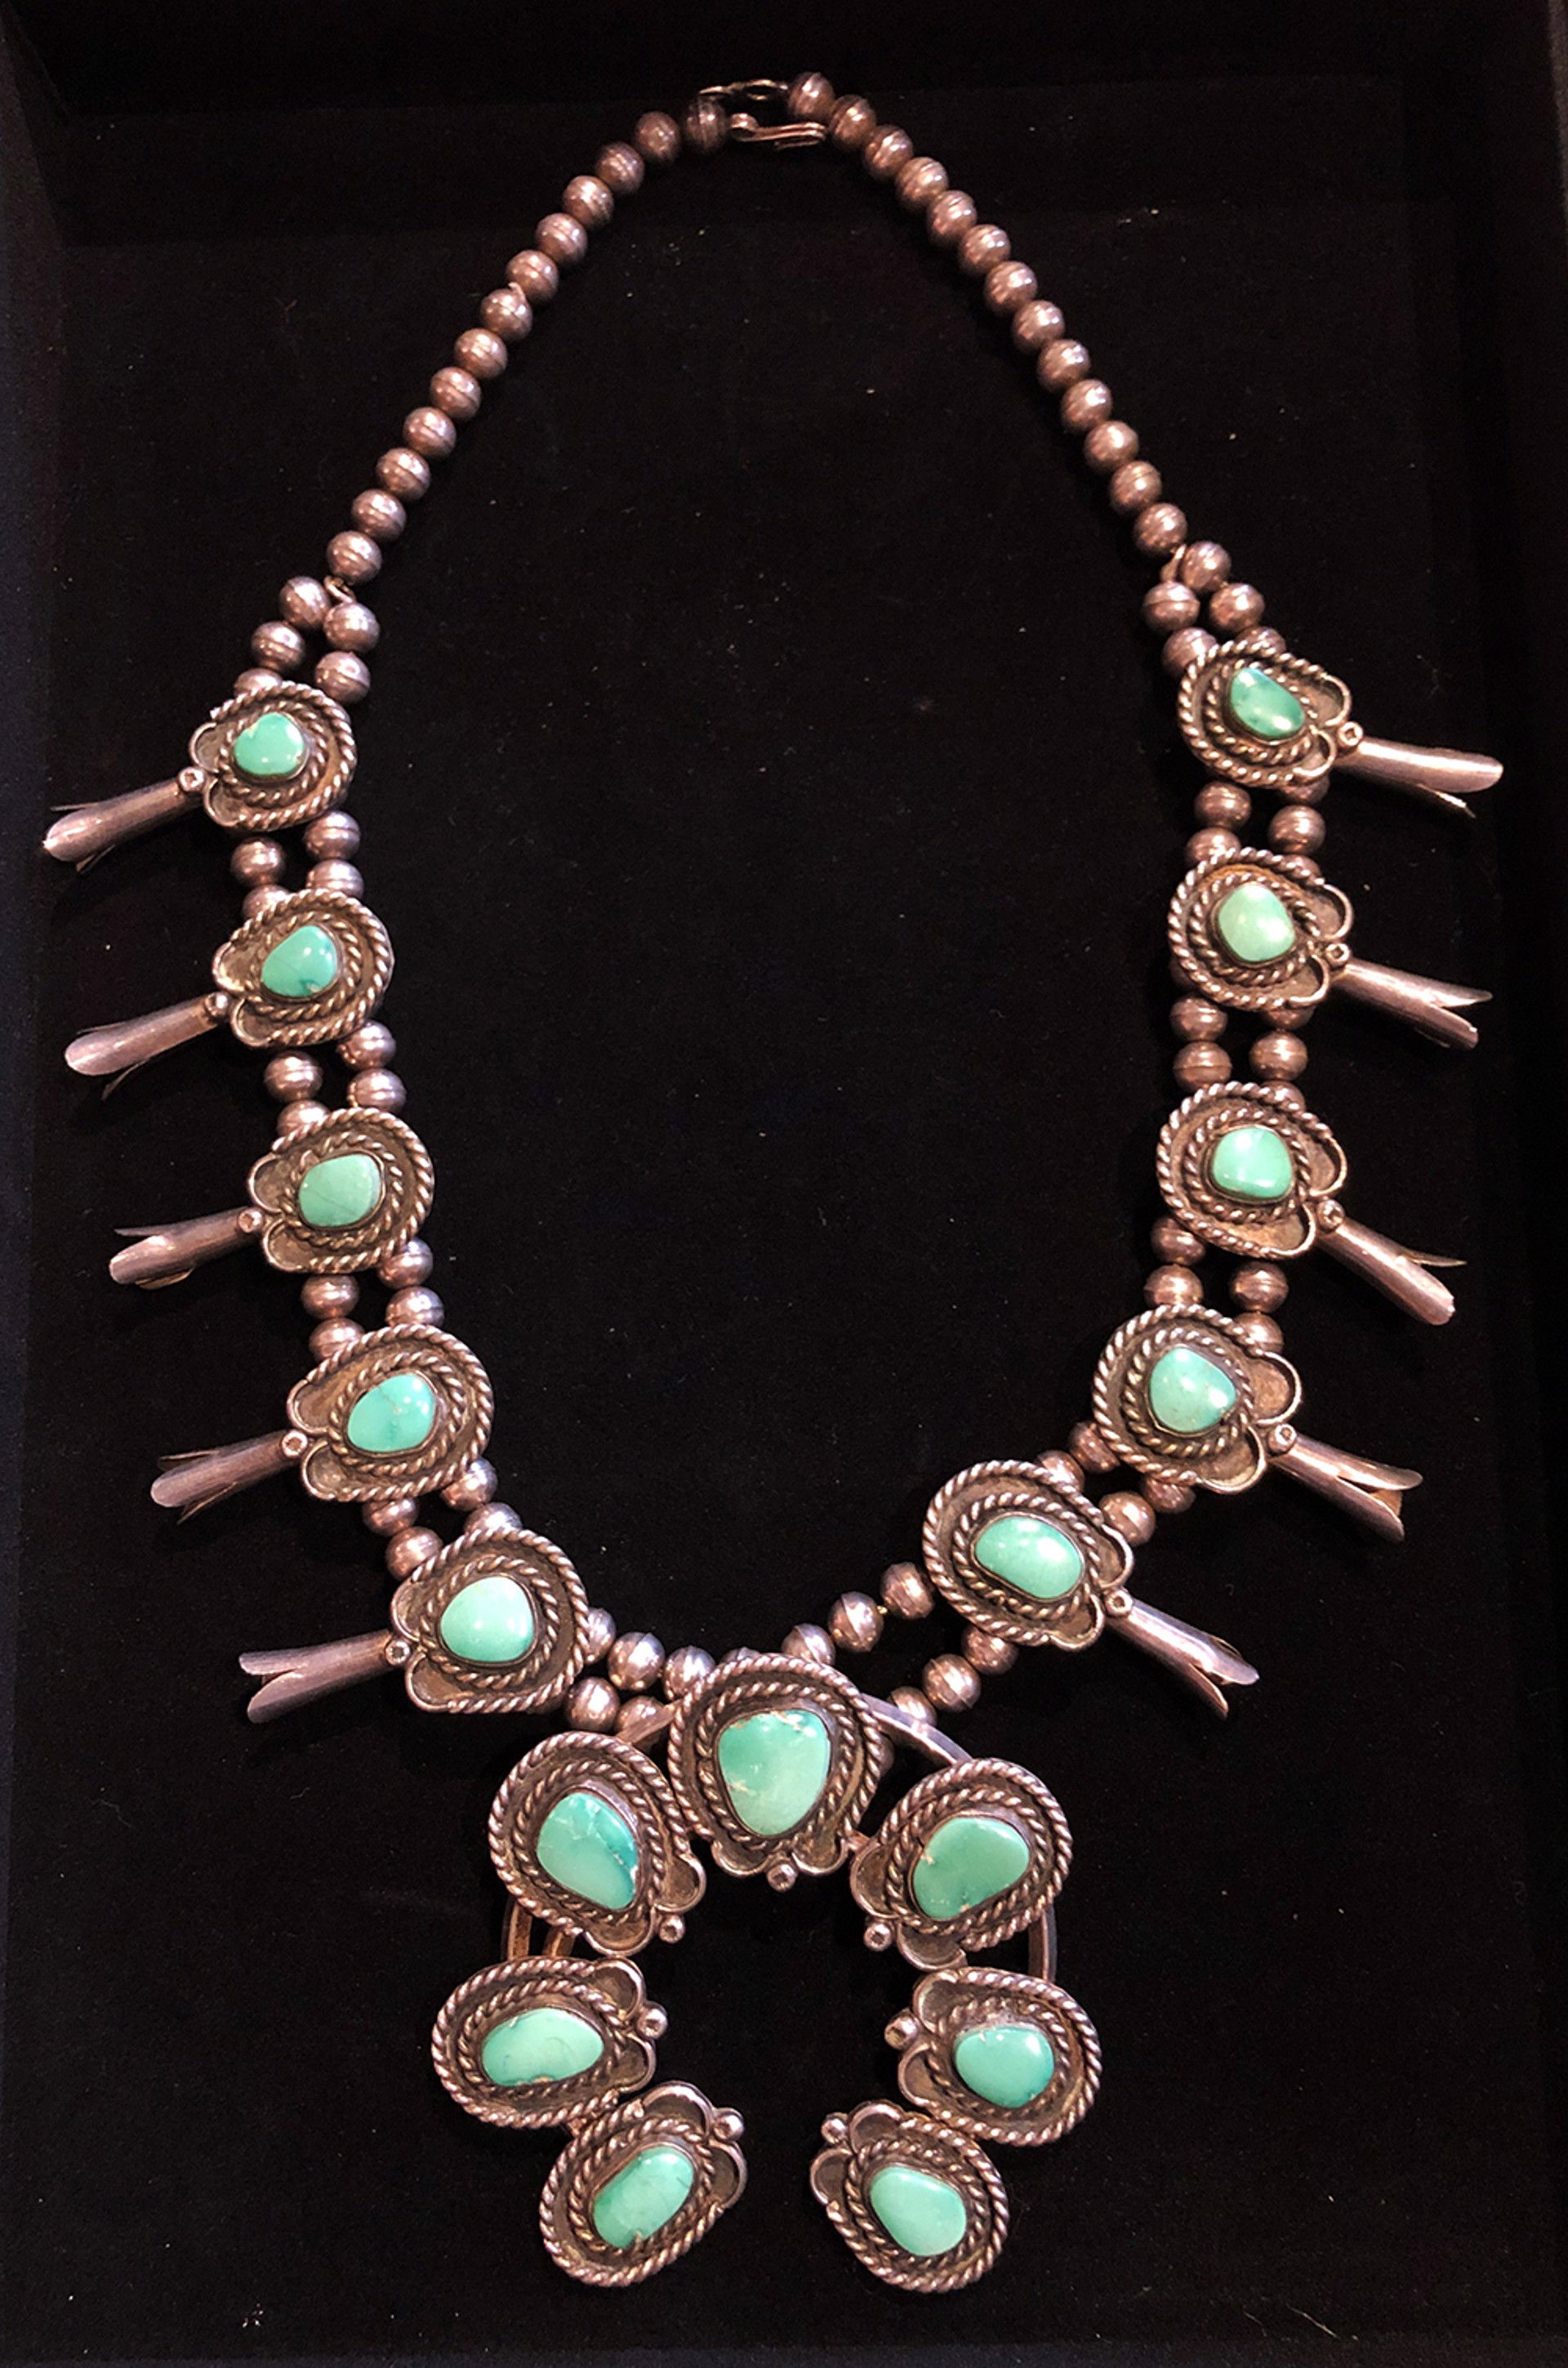 Vintage Navajo Handmade Native American Sterling Silver & Turquoise Squash Blossom Necklace